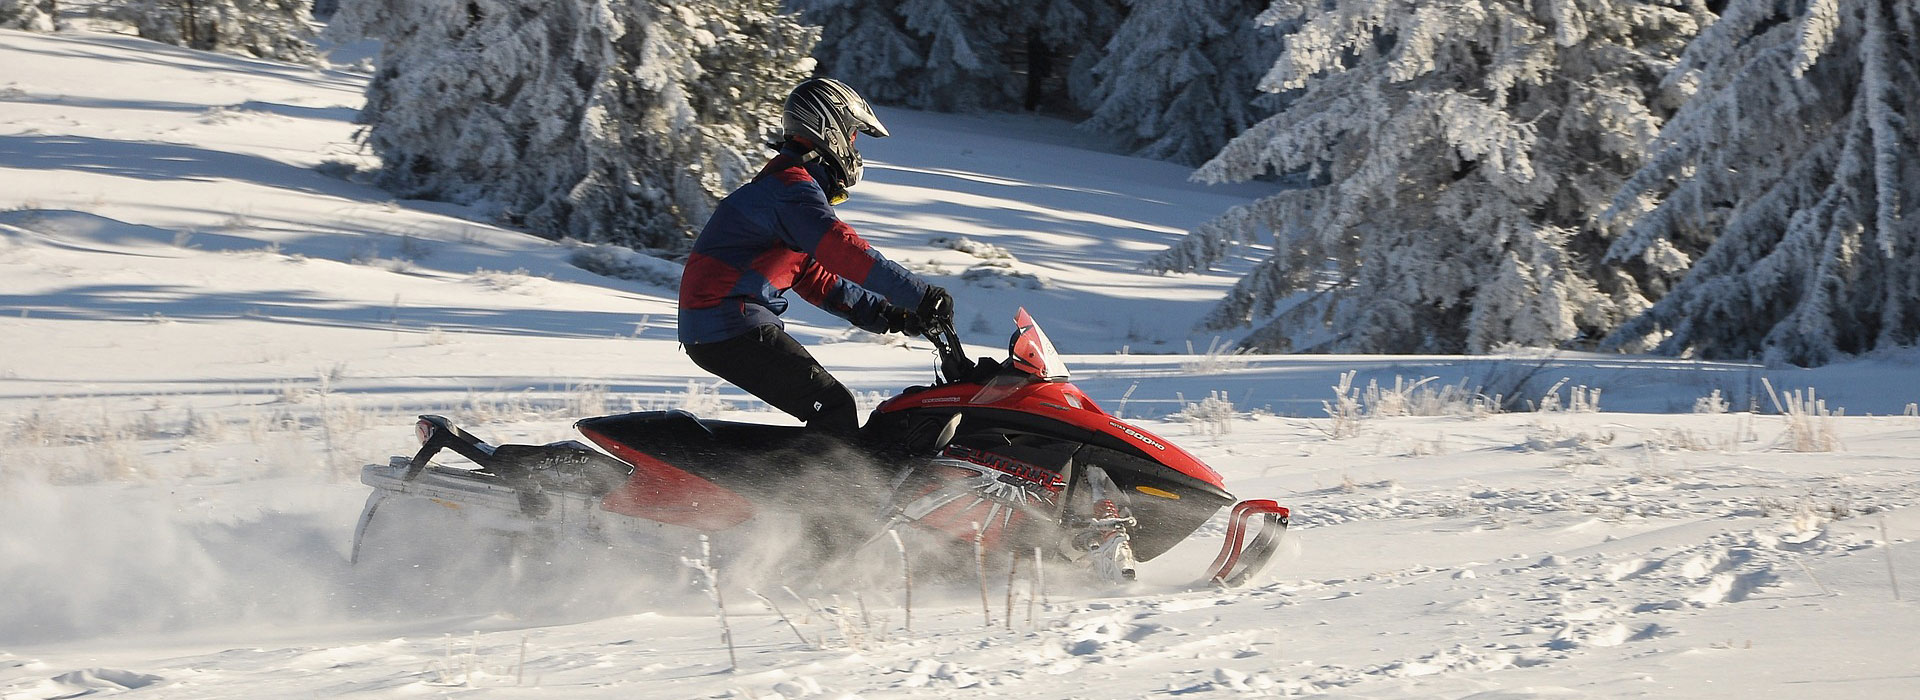 Motorcycle / ATV / Snowmobile Insurance